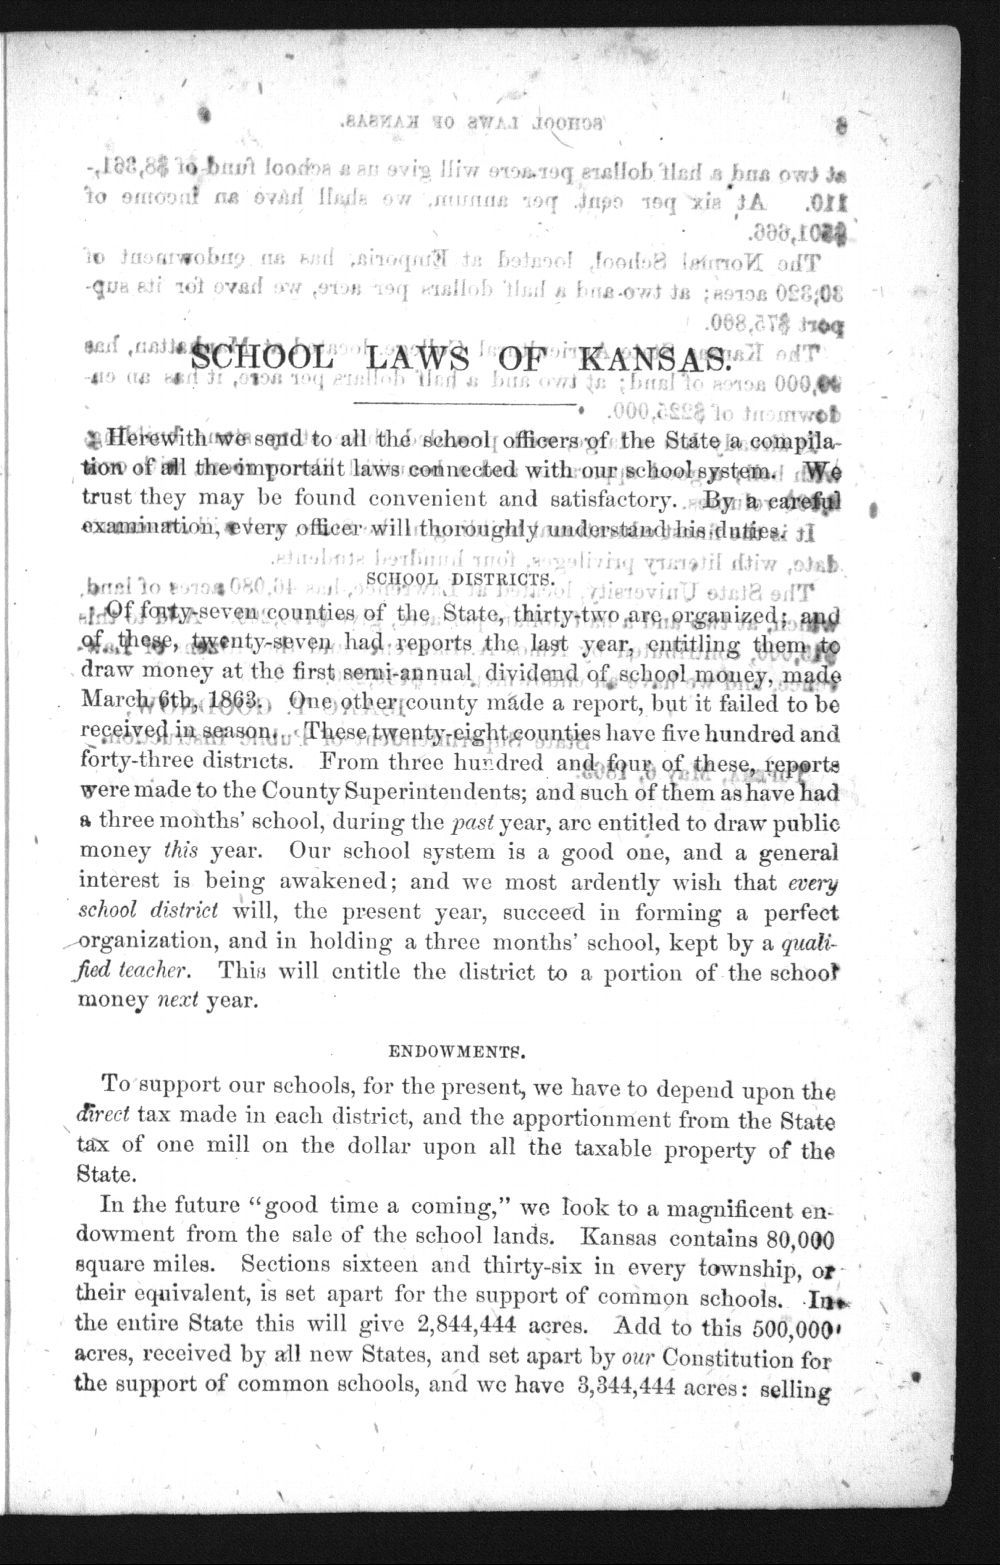 Laws and forms relating to common schools in the state of Kansas - 7